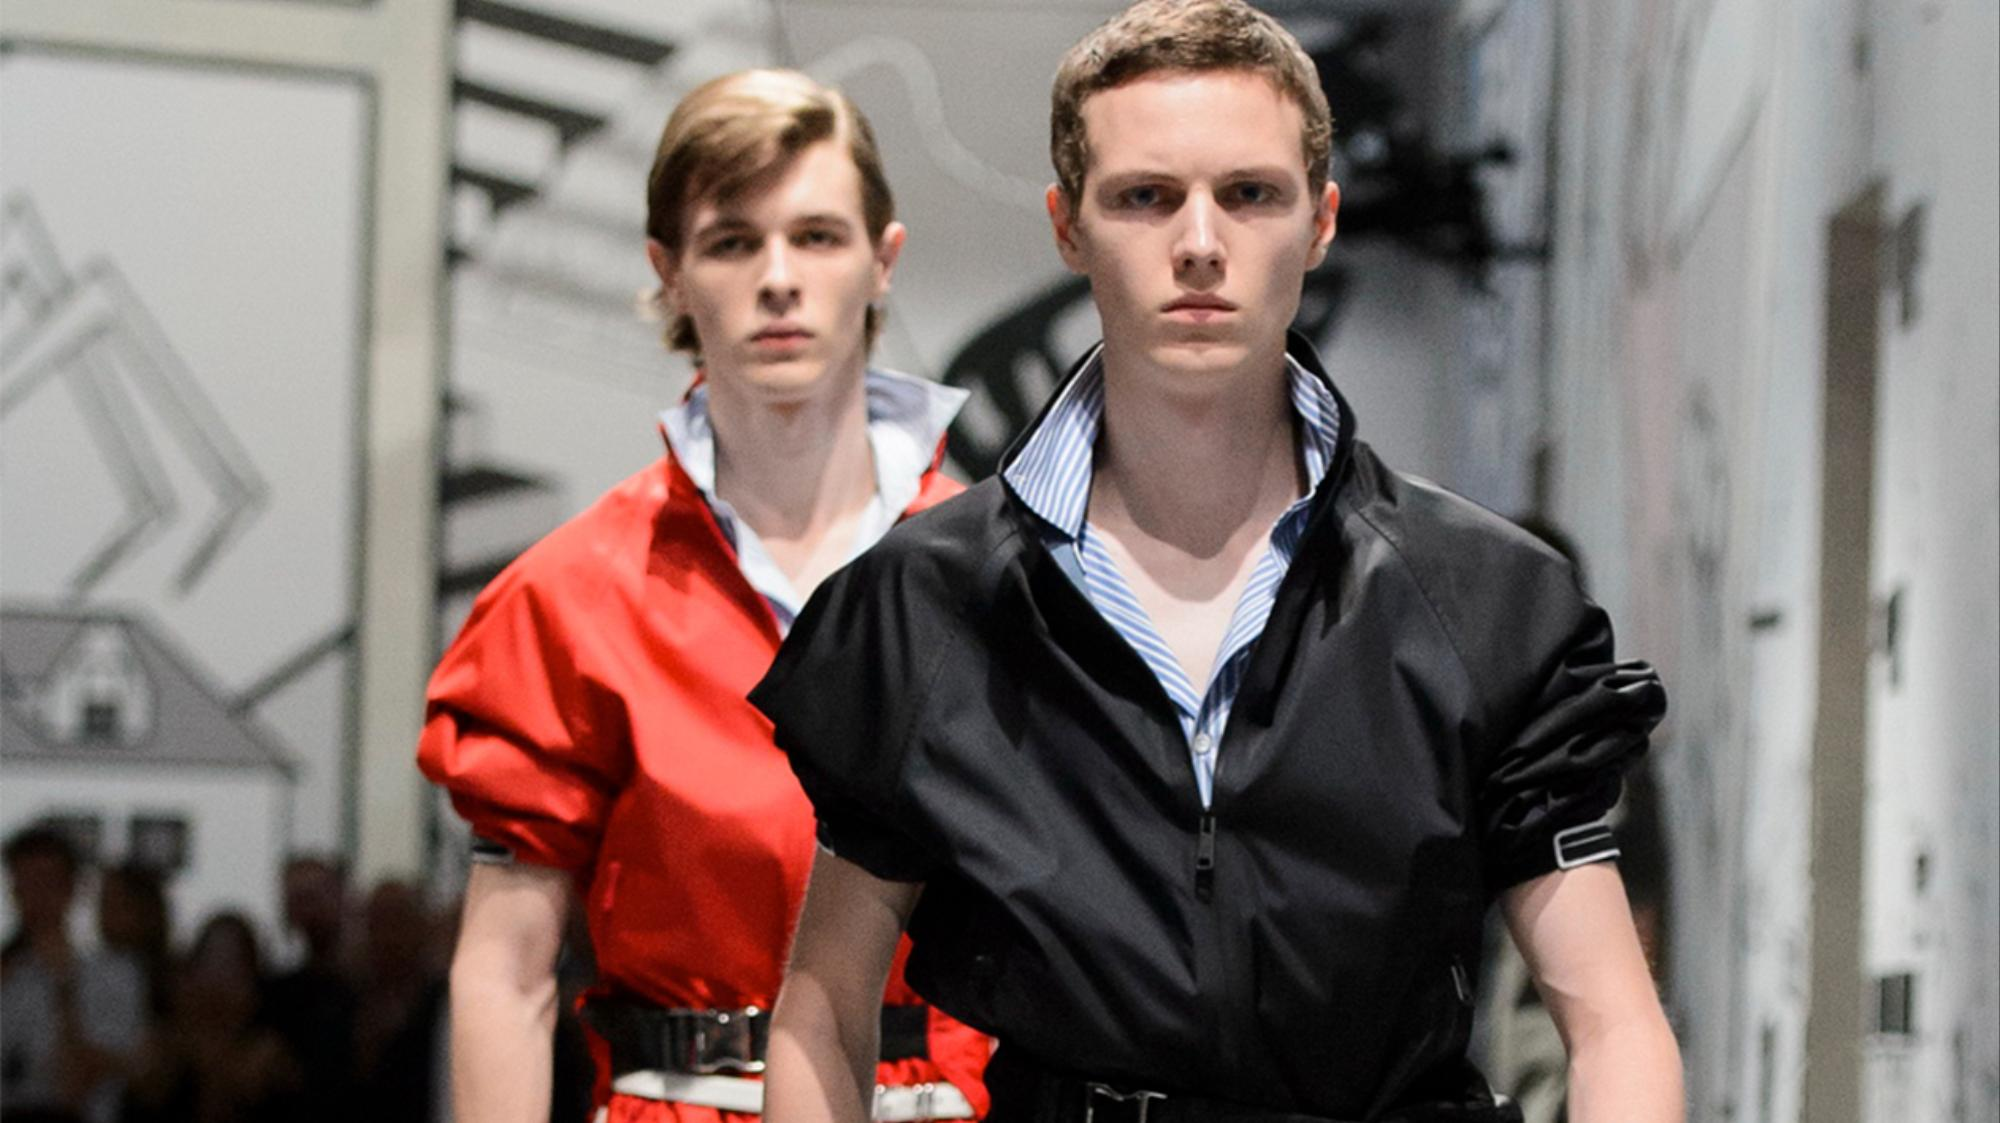 and then a hero comes along: prada, dsquared2, and msgm at milan men's